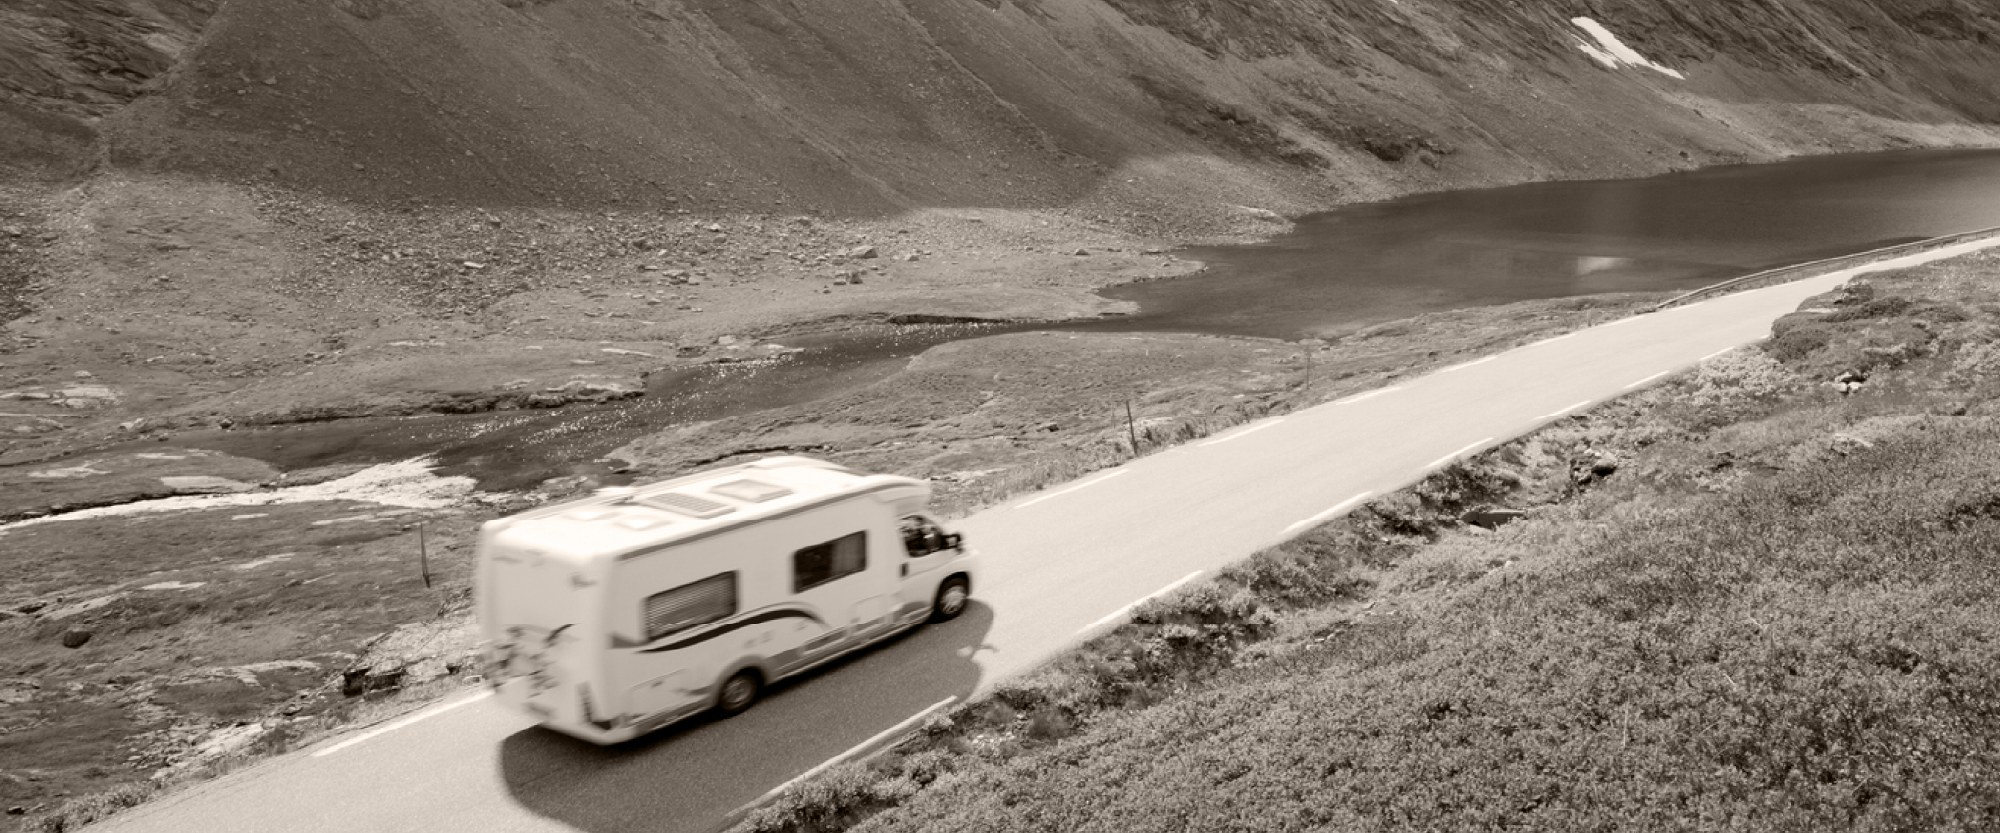 rv driving on an open highway